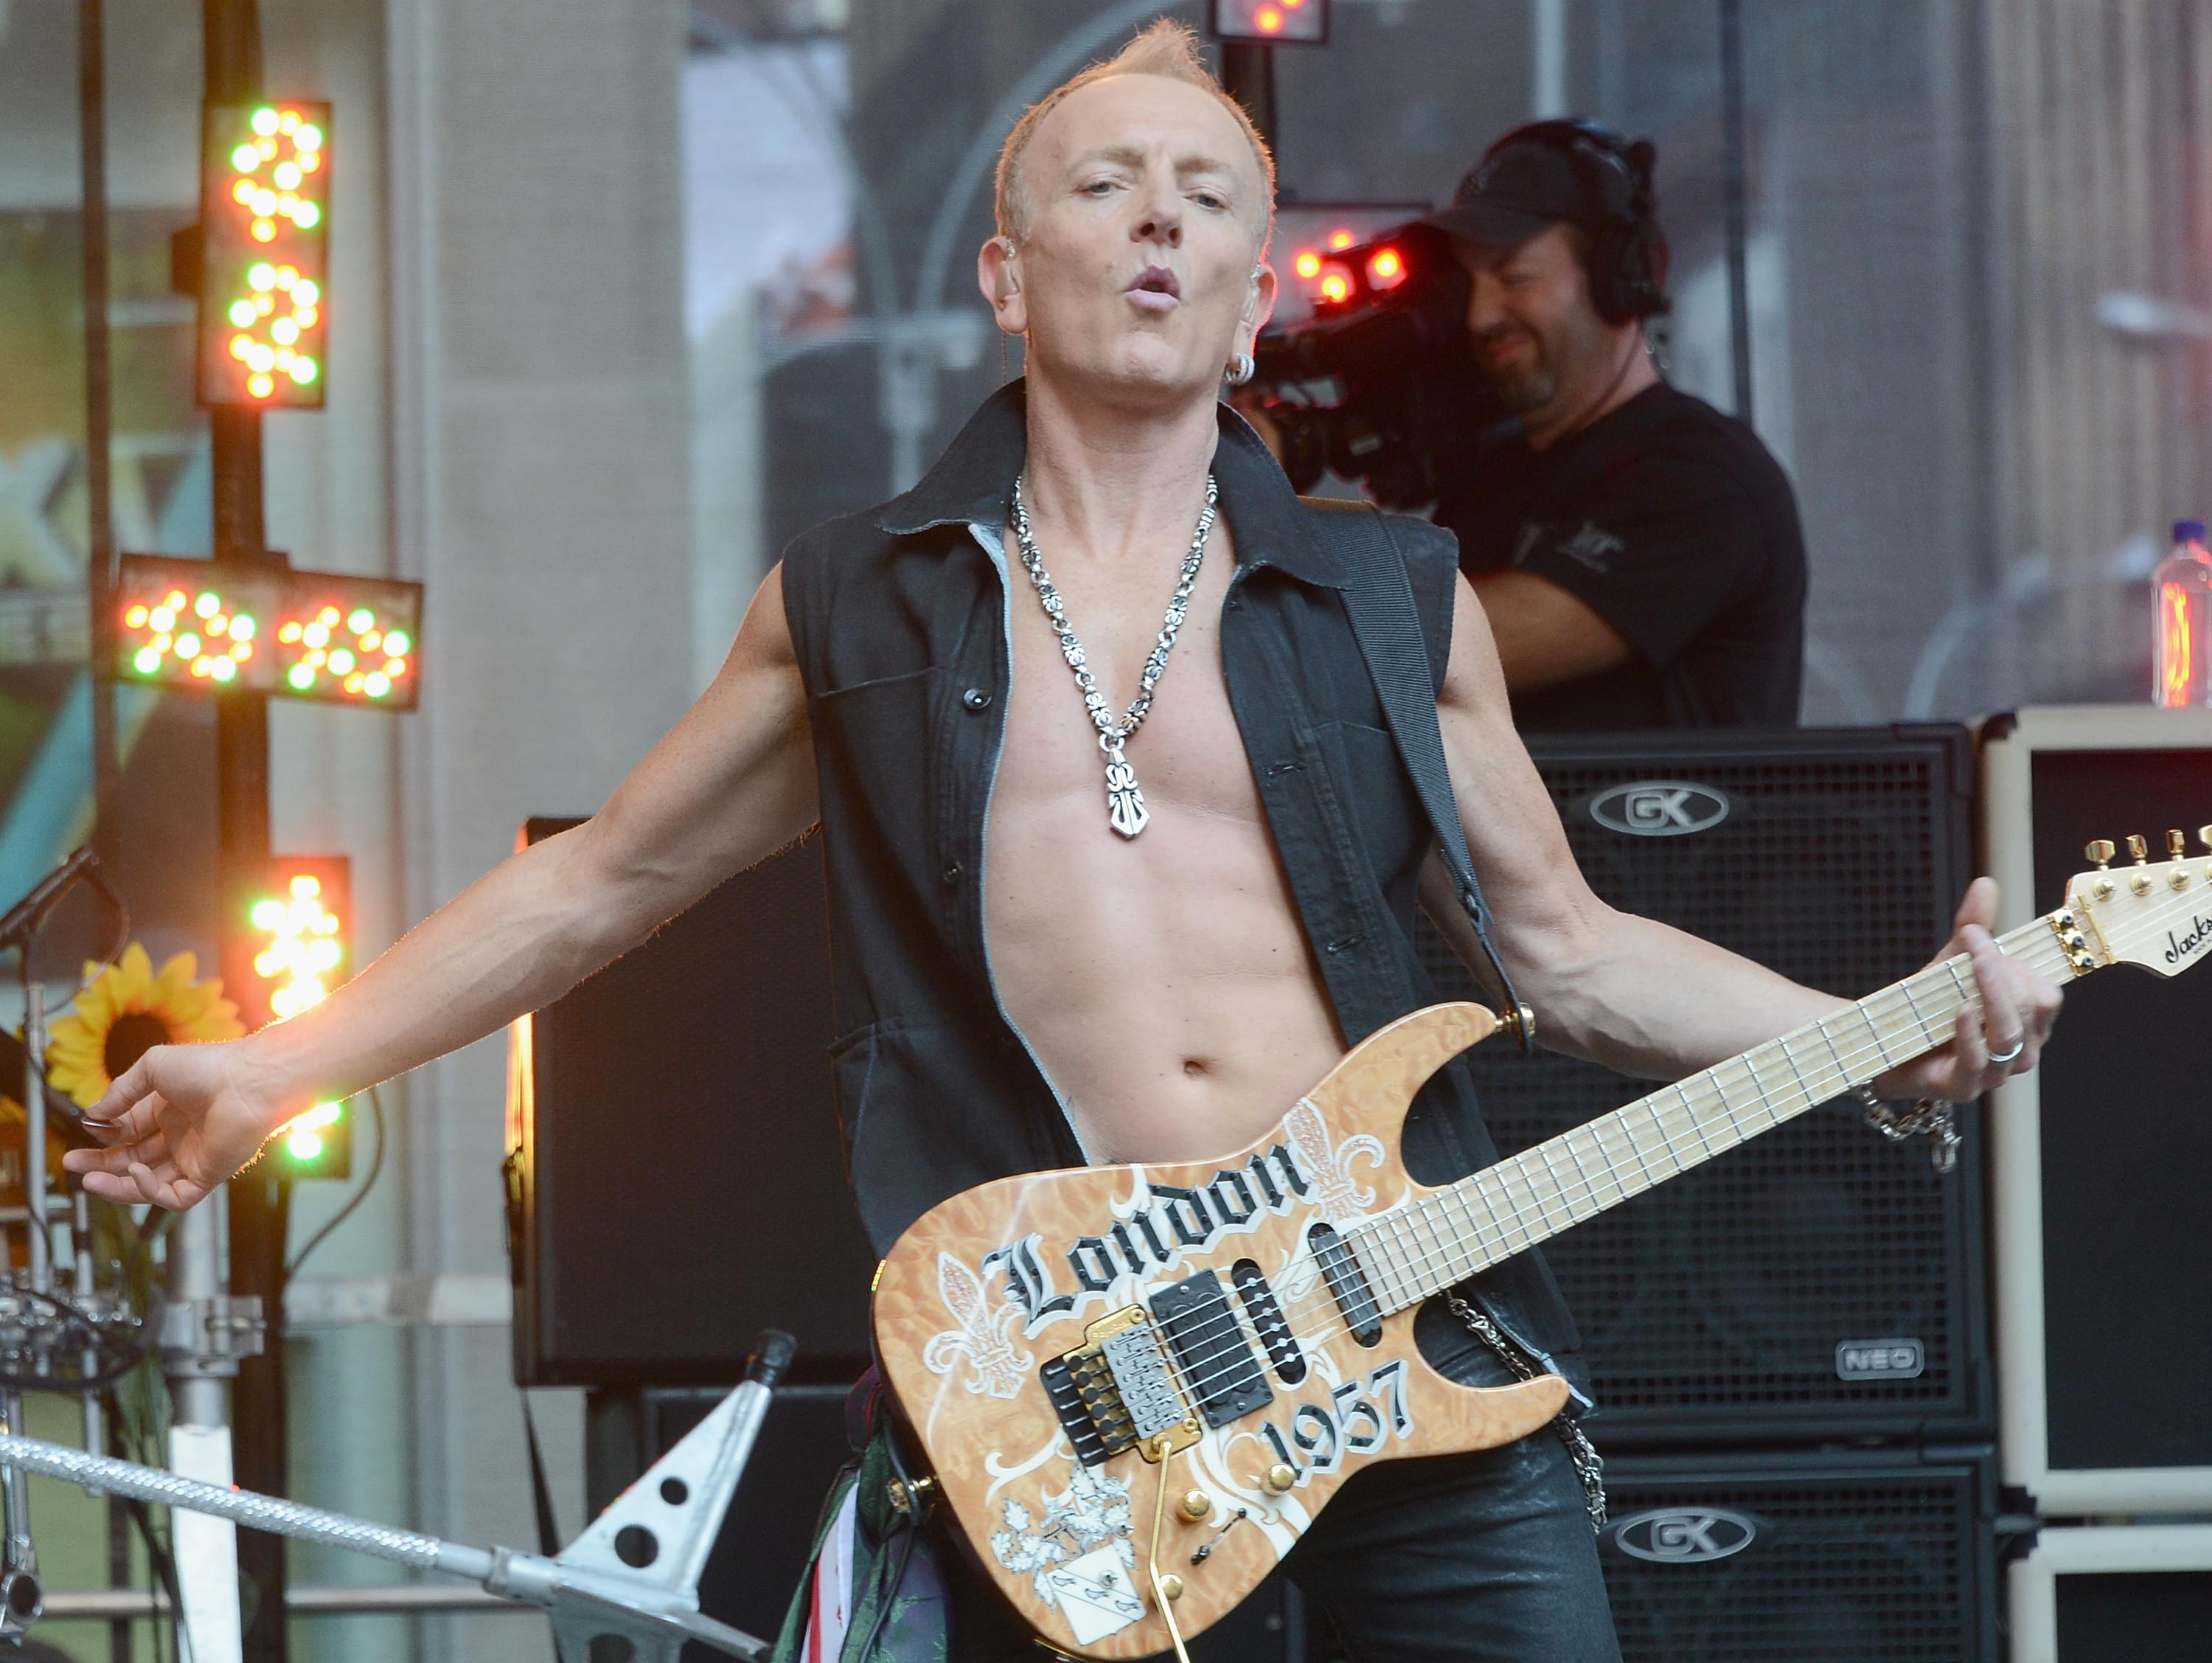 Def Leppard Guitarist Phil Collen Confirms New Album In The Works 94 7 Wls Wls Fm